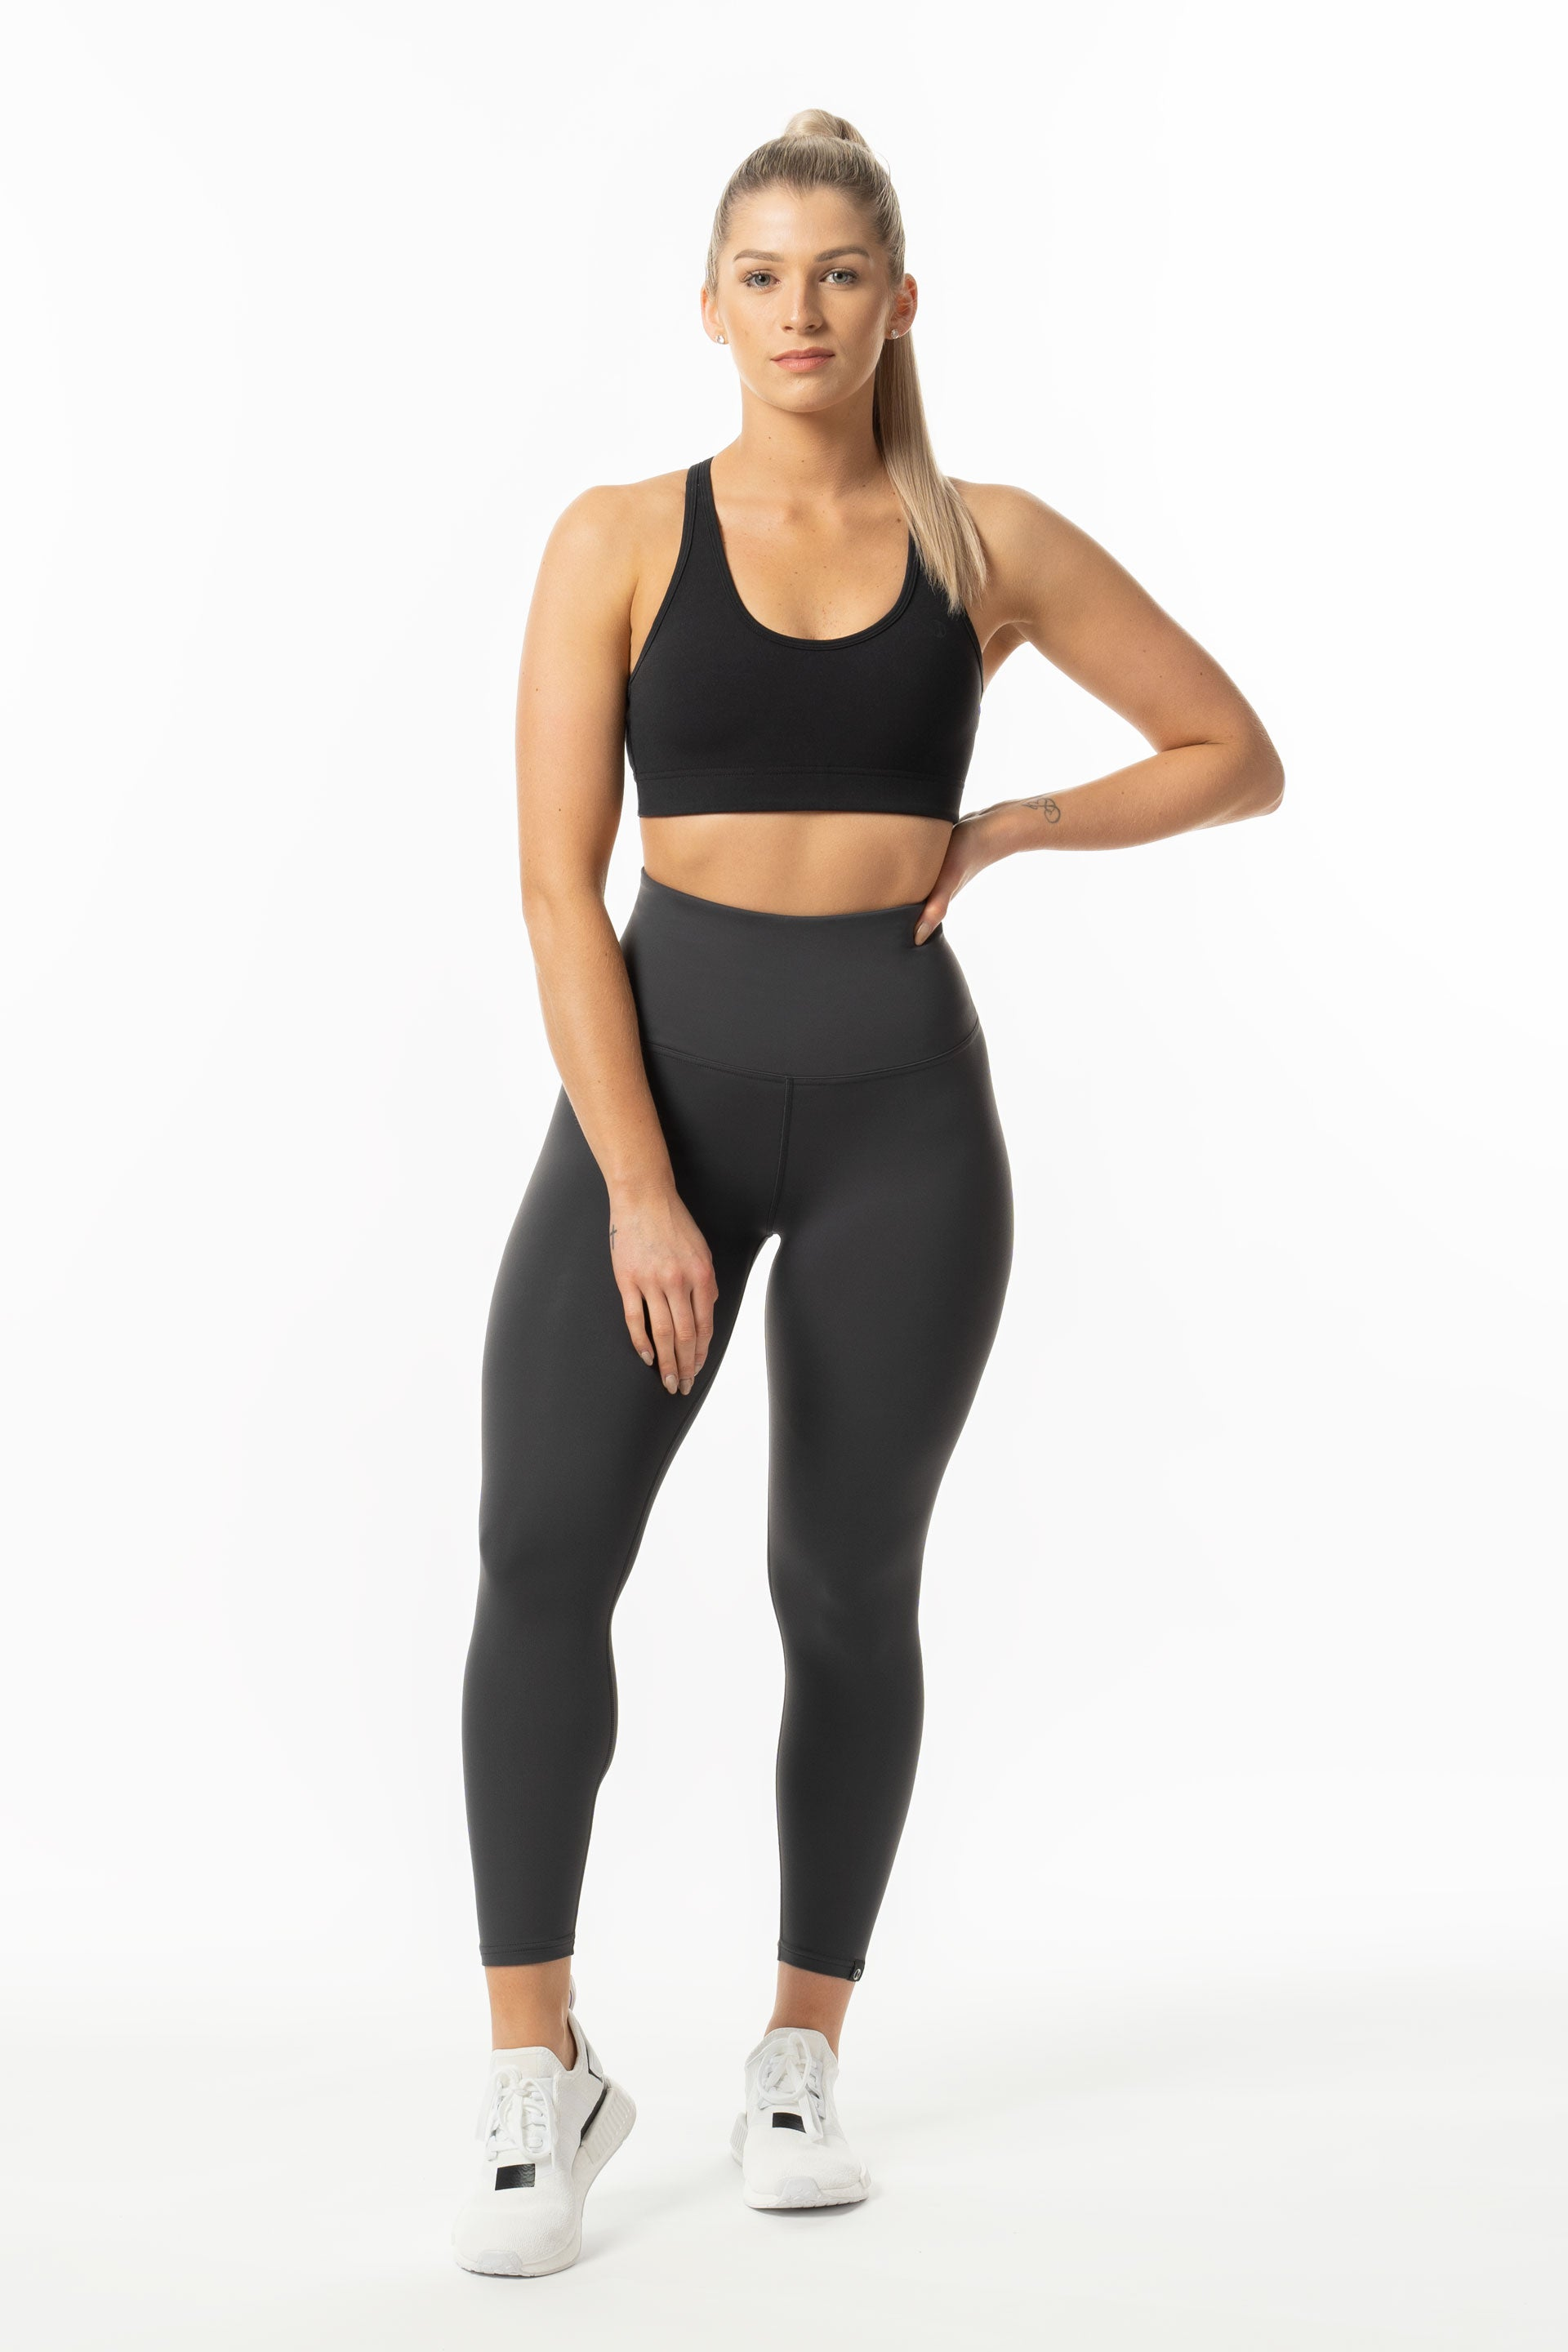 TechLite 7/8 Hi-RISE TIGHTS - GREY ( SIZES: XS, S & XL)